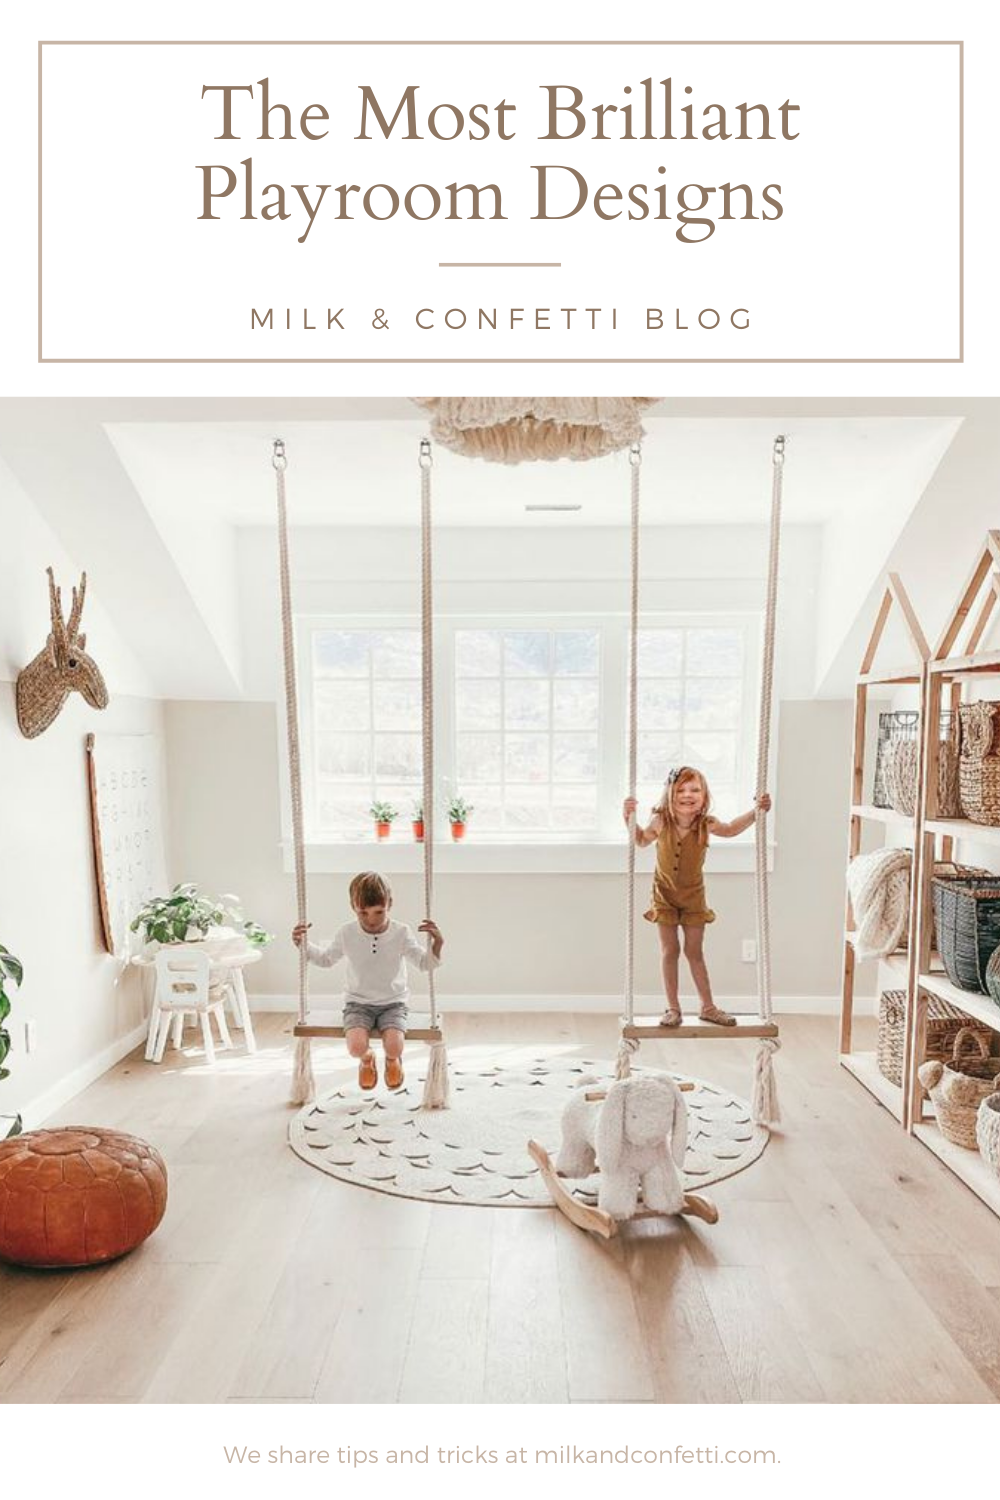 A neutral scandinavian childrens playroom idea with rope style swings, white table and chairs and simple shelving with storage baskets